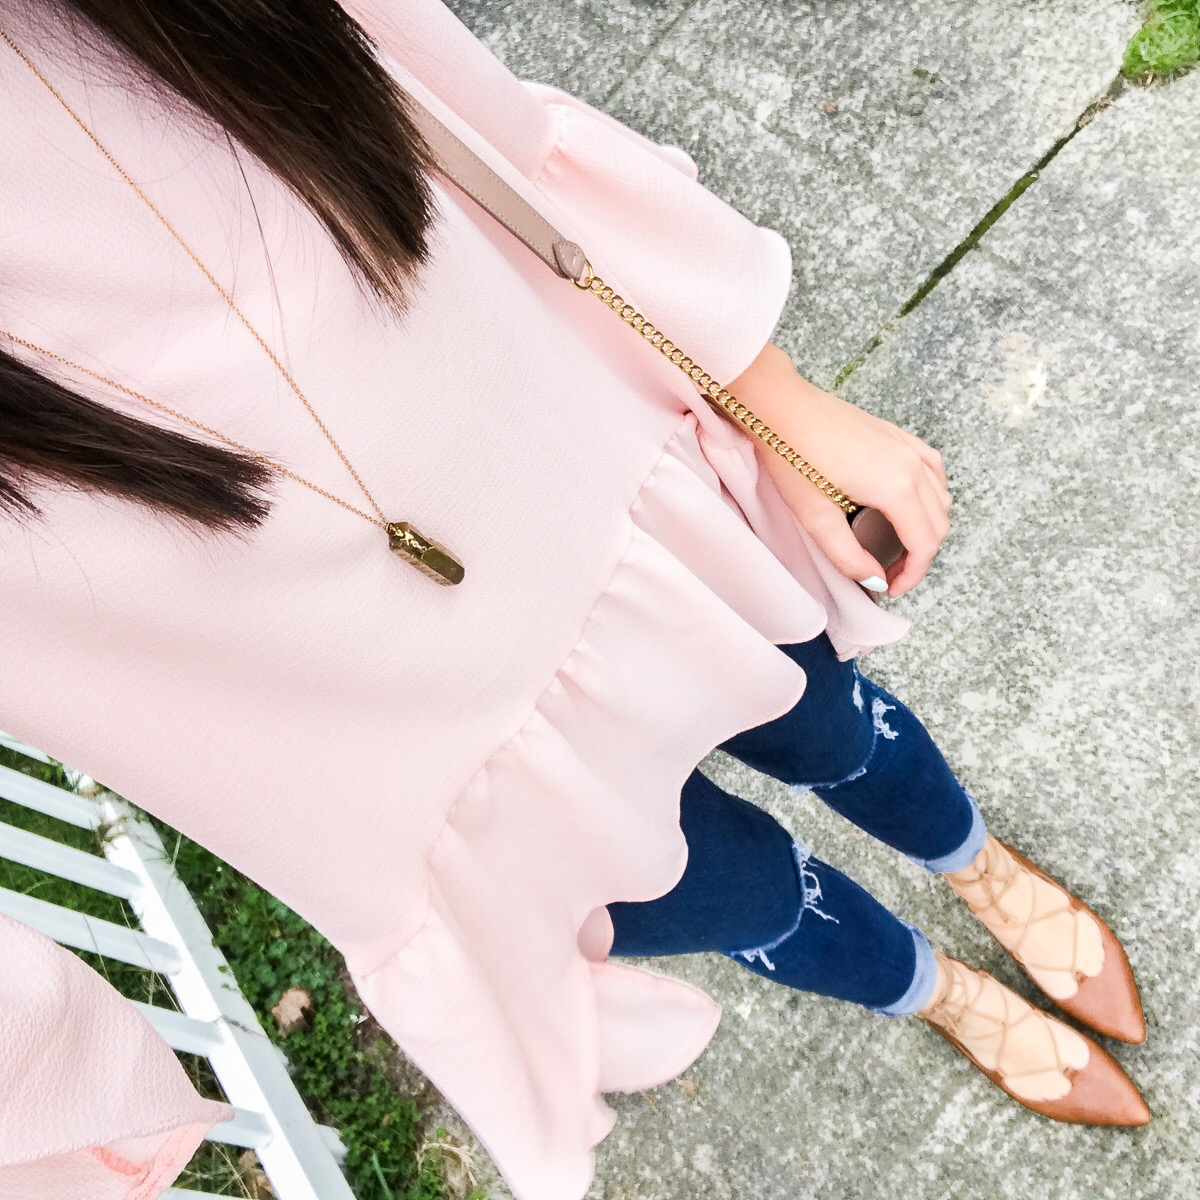 Ruffle hem top, outfit of the day, casual cute outfit, spring style, petite fashion blog